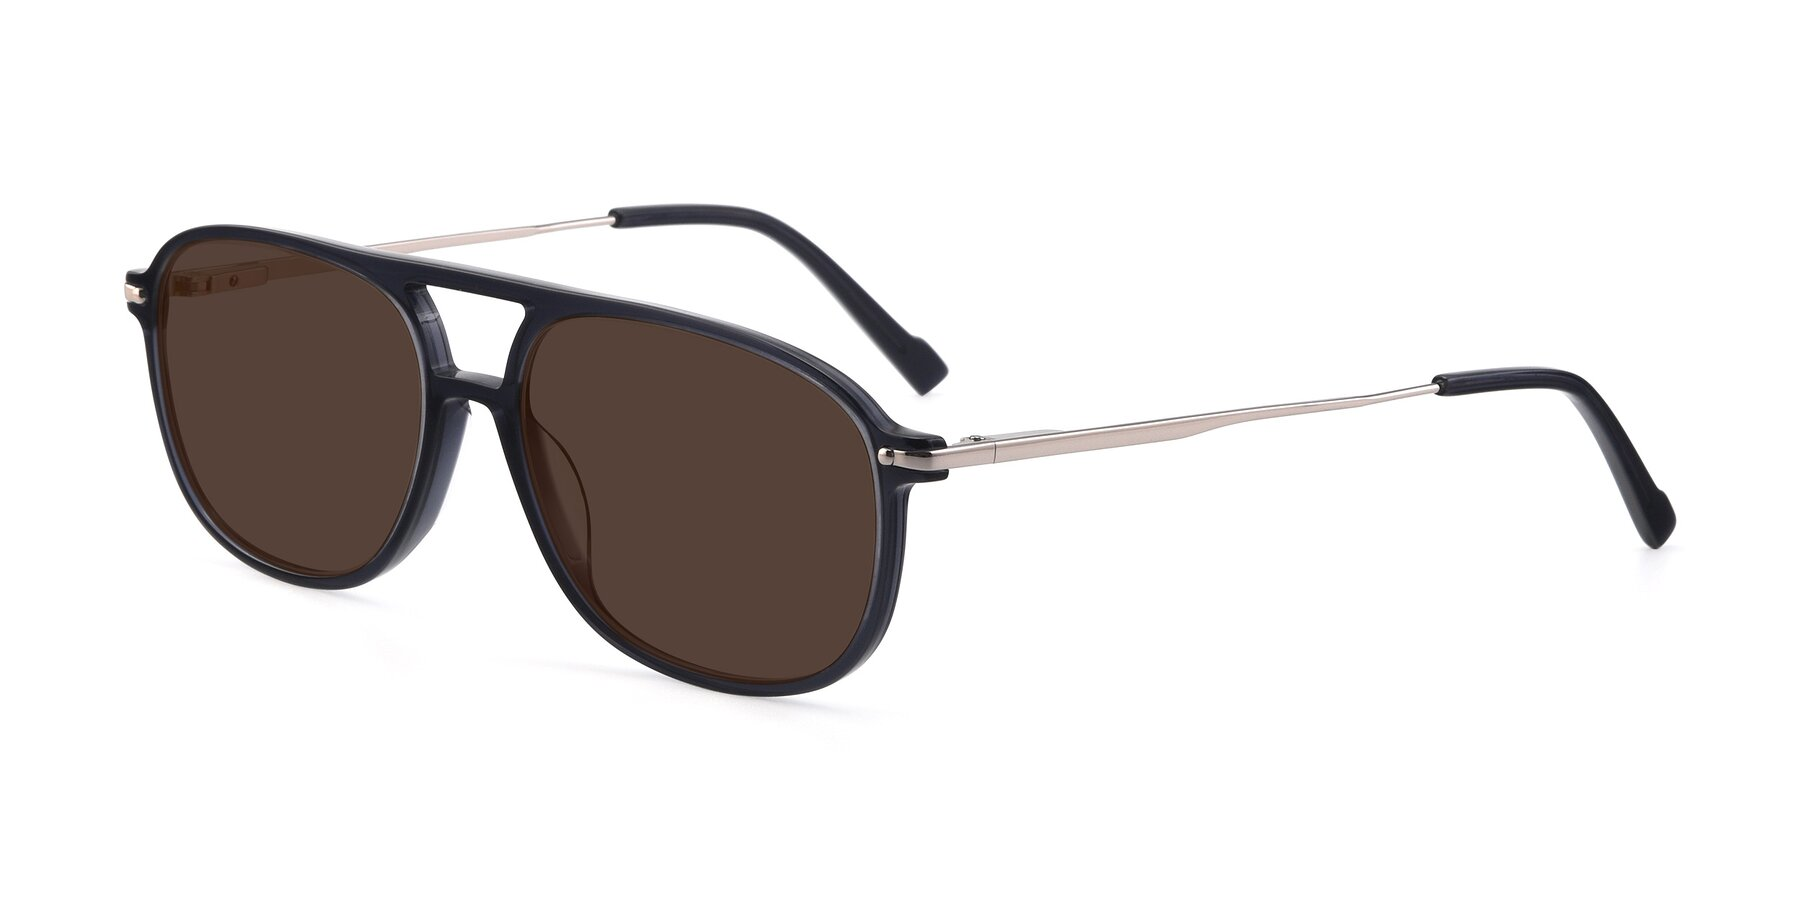 Angle of 17580 in Dark Bluish Gray with Brown Tinted Lenses